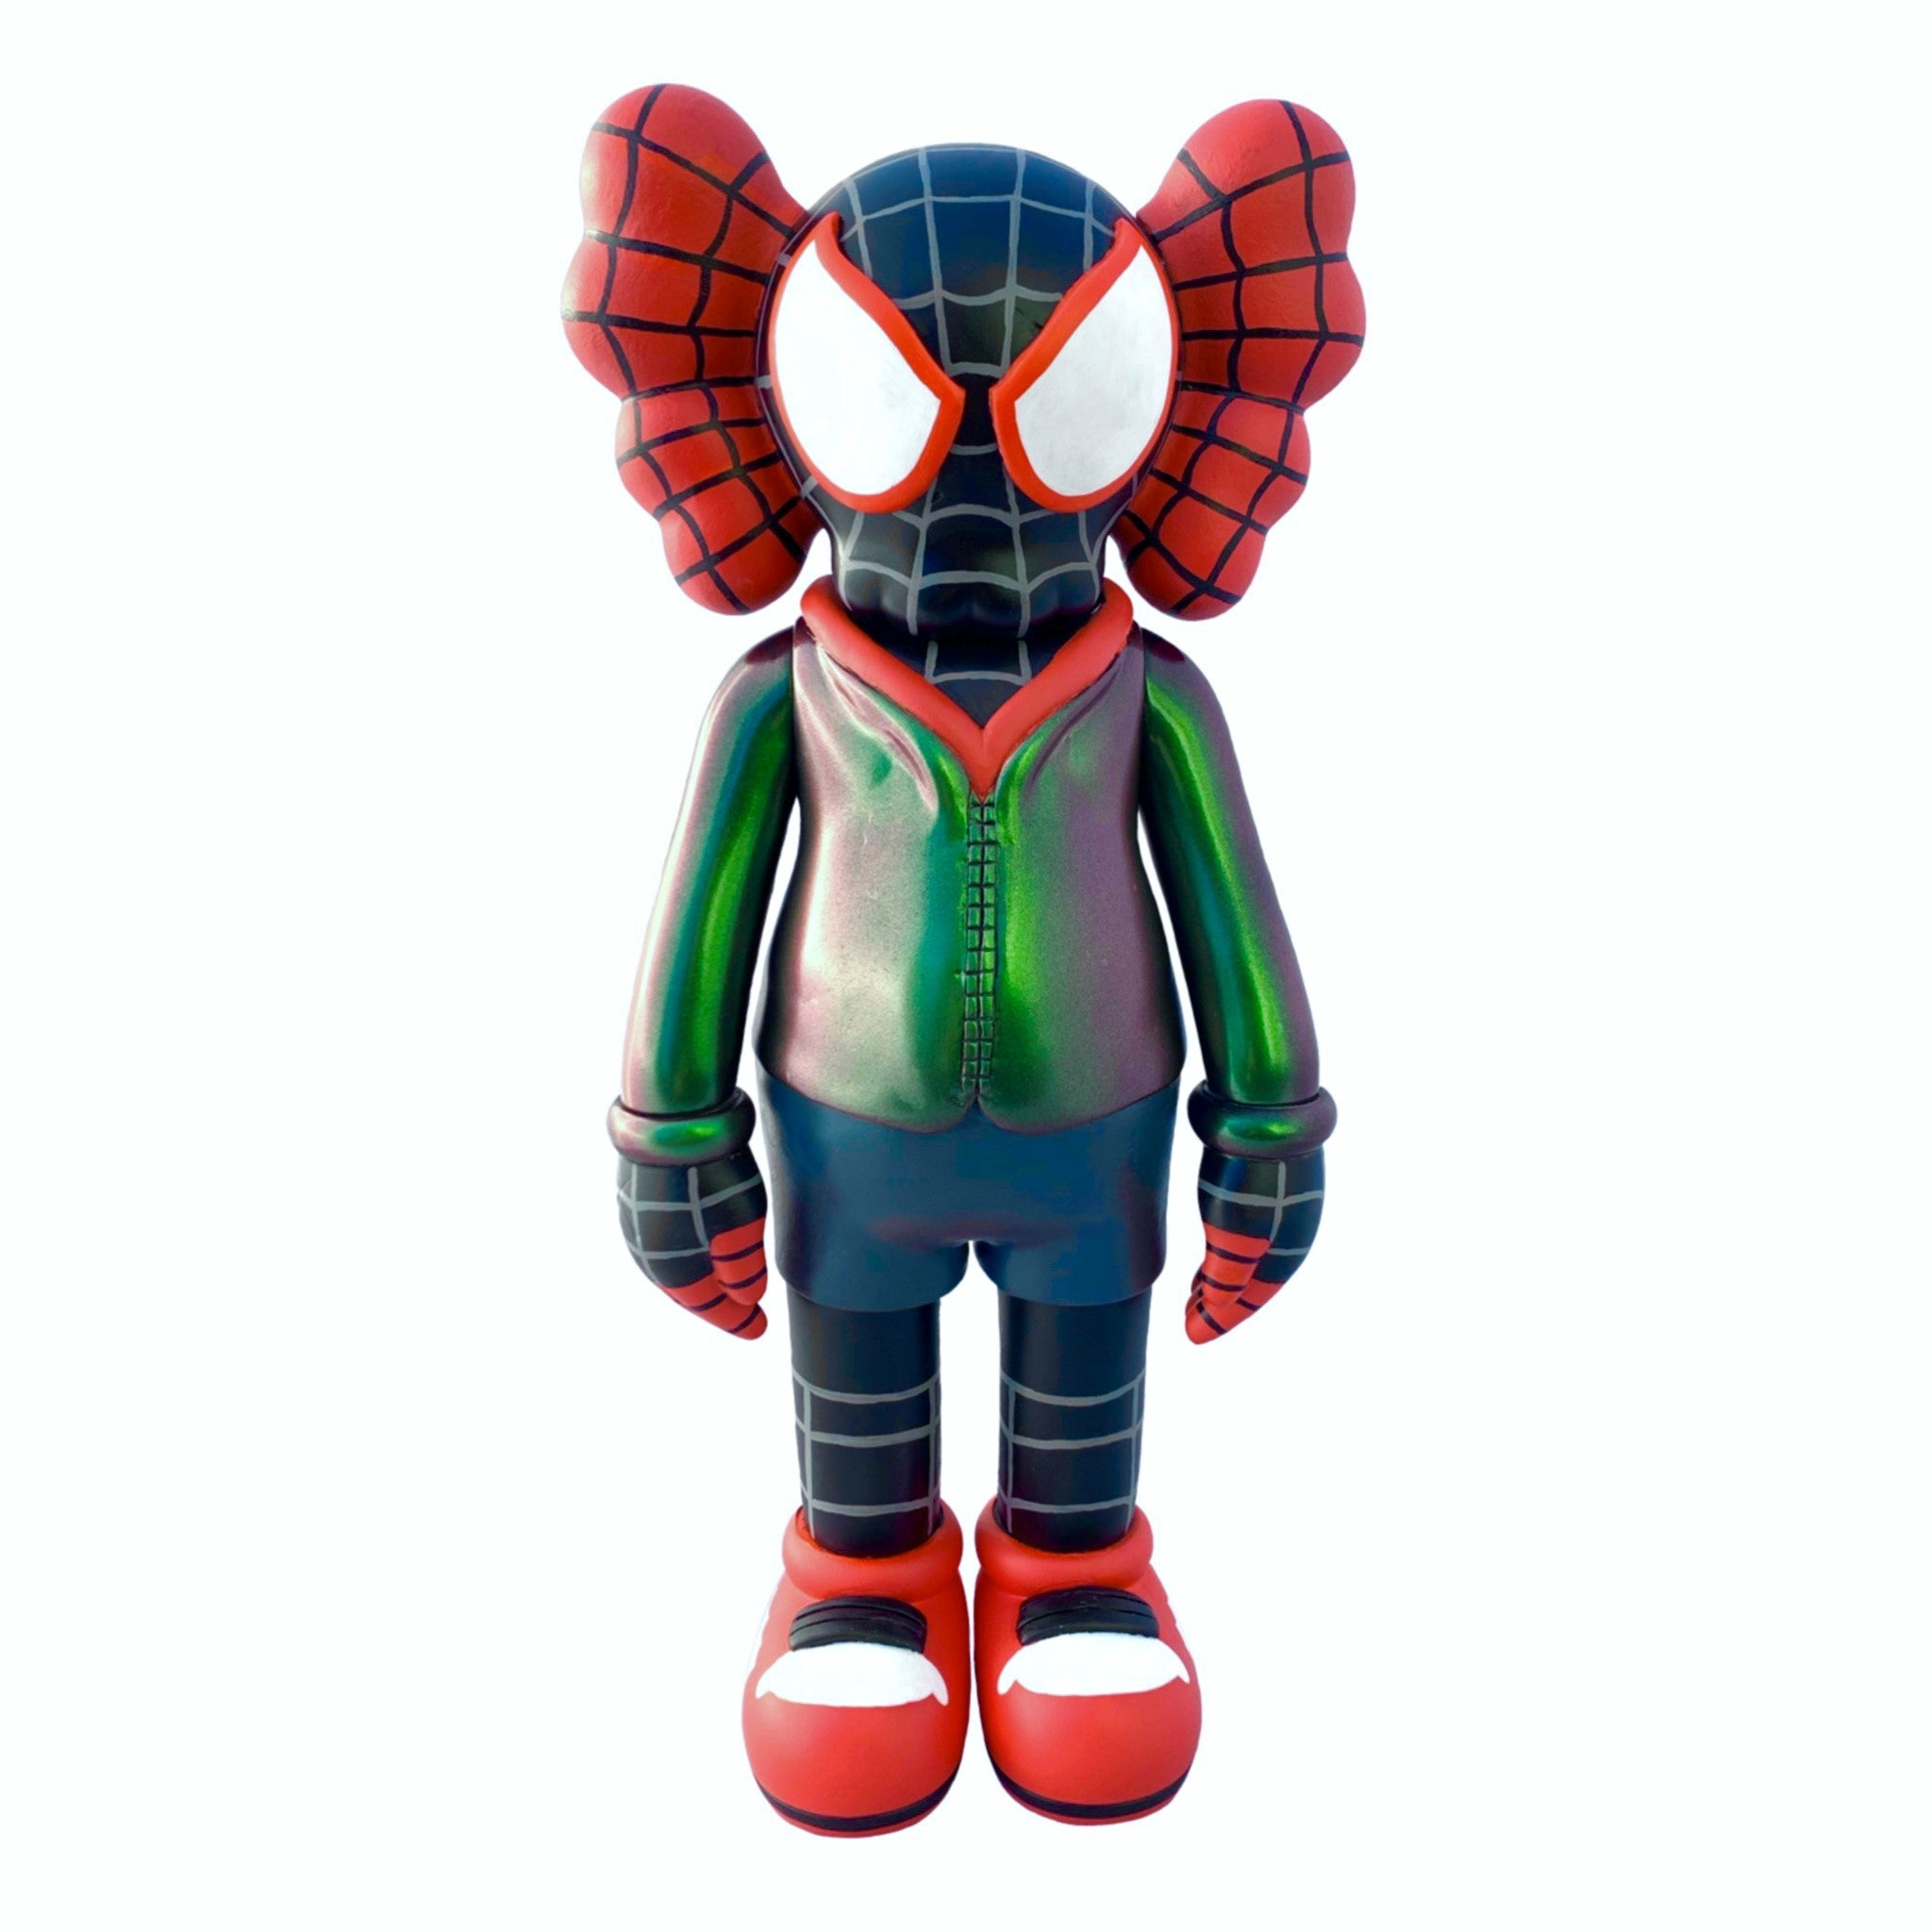 Misappropriated Icon 3 - Spider-Kaws By In Prime We Trust